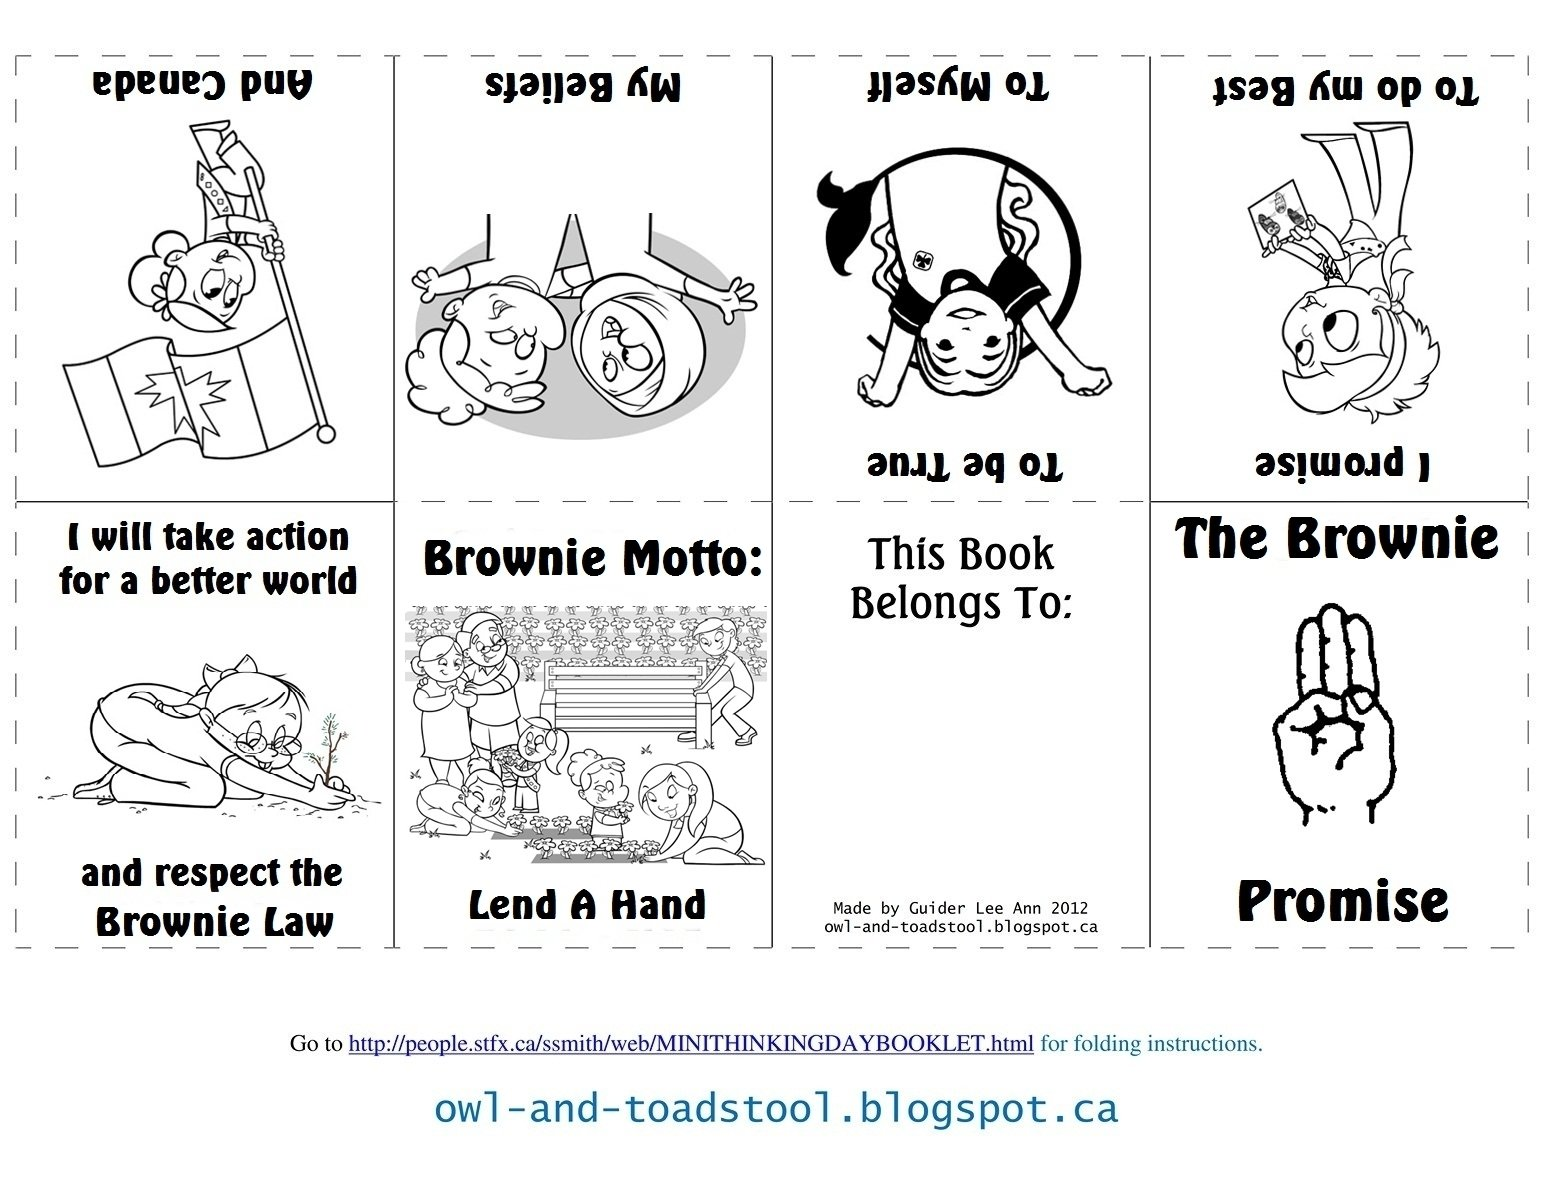 10 Awesome Brownie Girl Scout Meeting Ideas owl toadstool brownies promise law minibooks girl guides 1